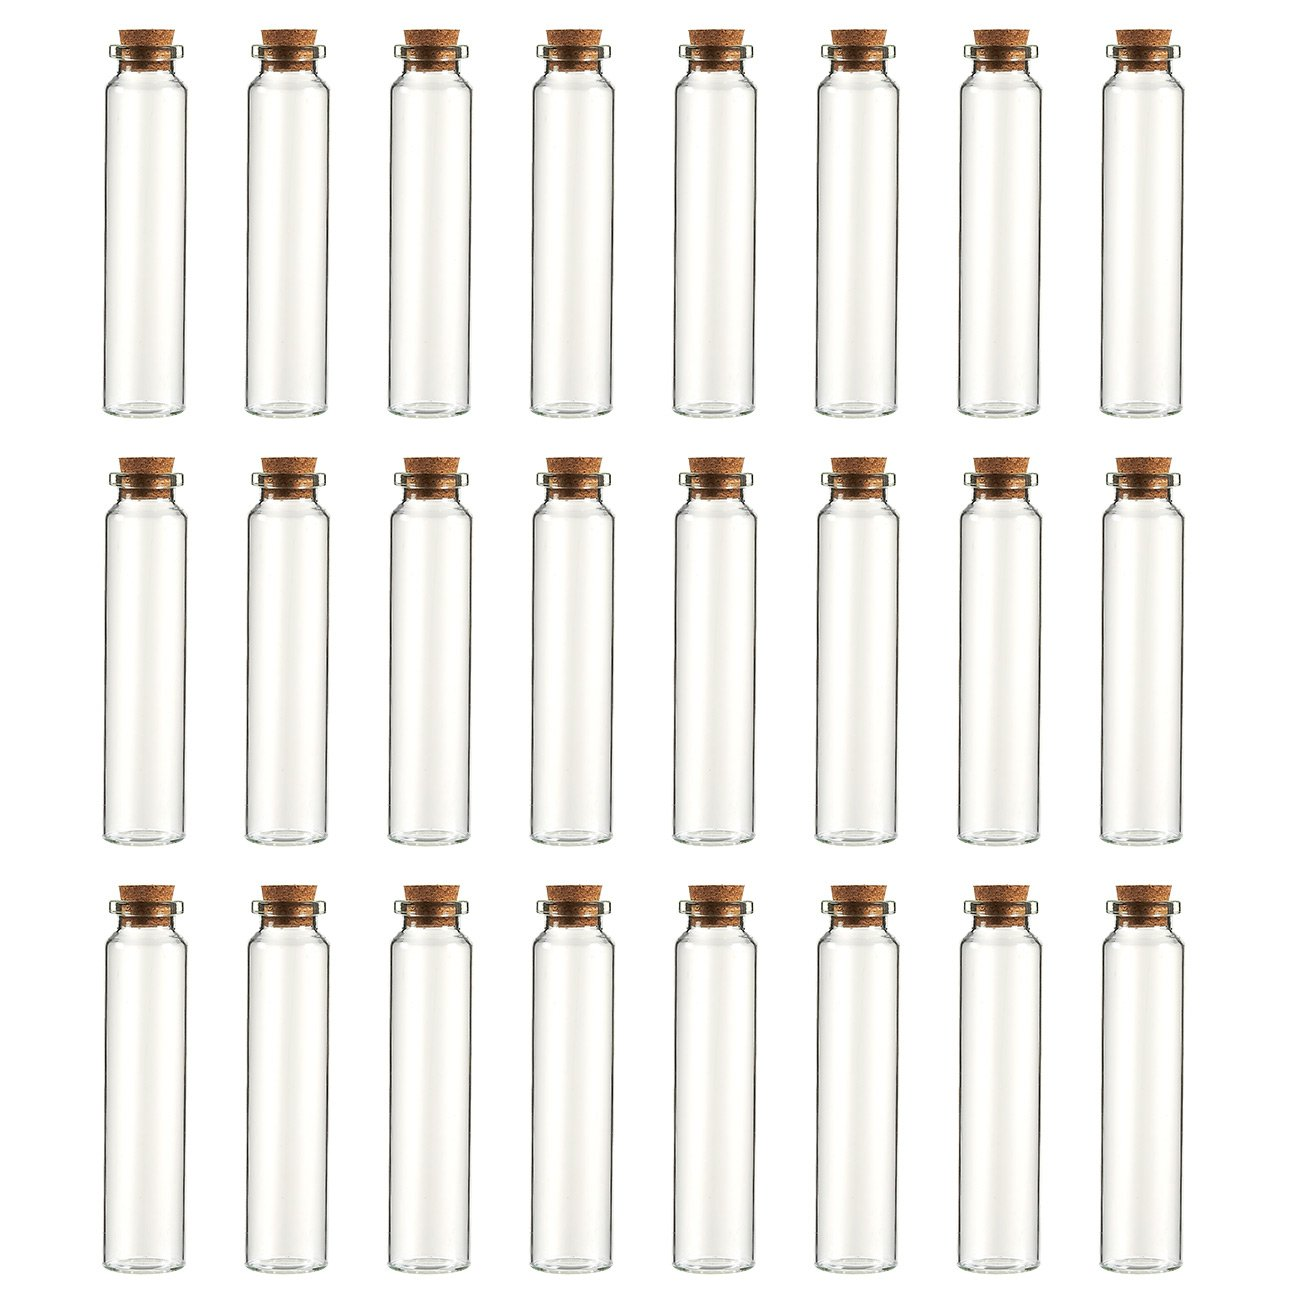 Clear Glass Bottles with Cork Lids- 24-Pack Mini Transparent Jars with Stoppers for Vintage Wedding Decoration, DIY, Home, Party Favors, 4 Inches Tall, 8.45-Ounce